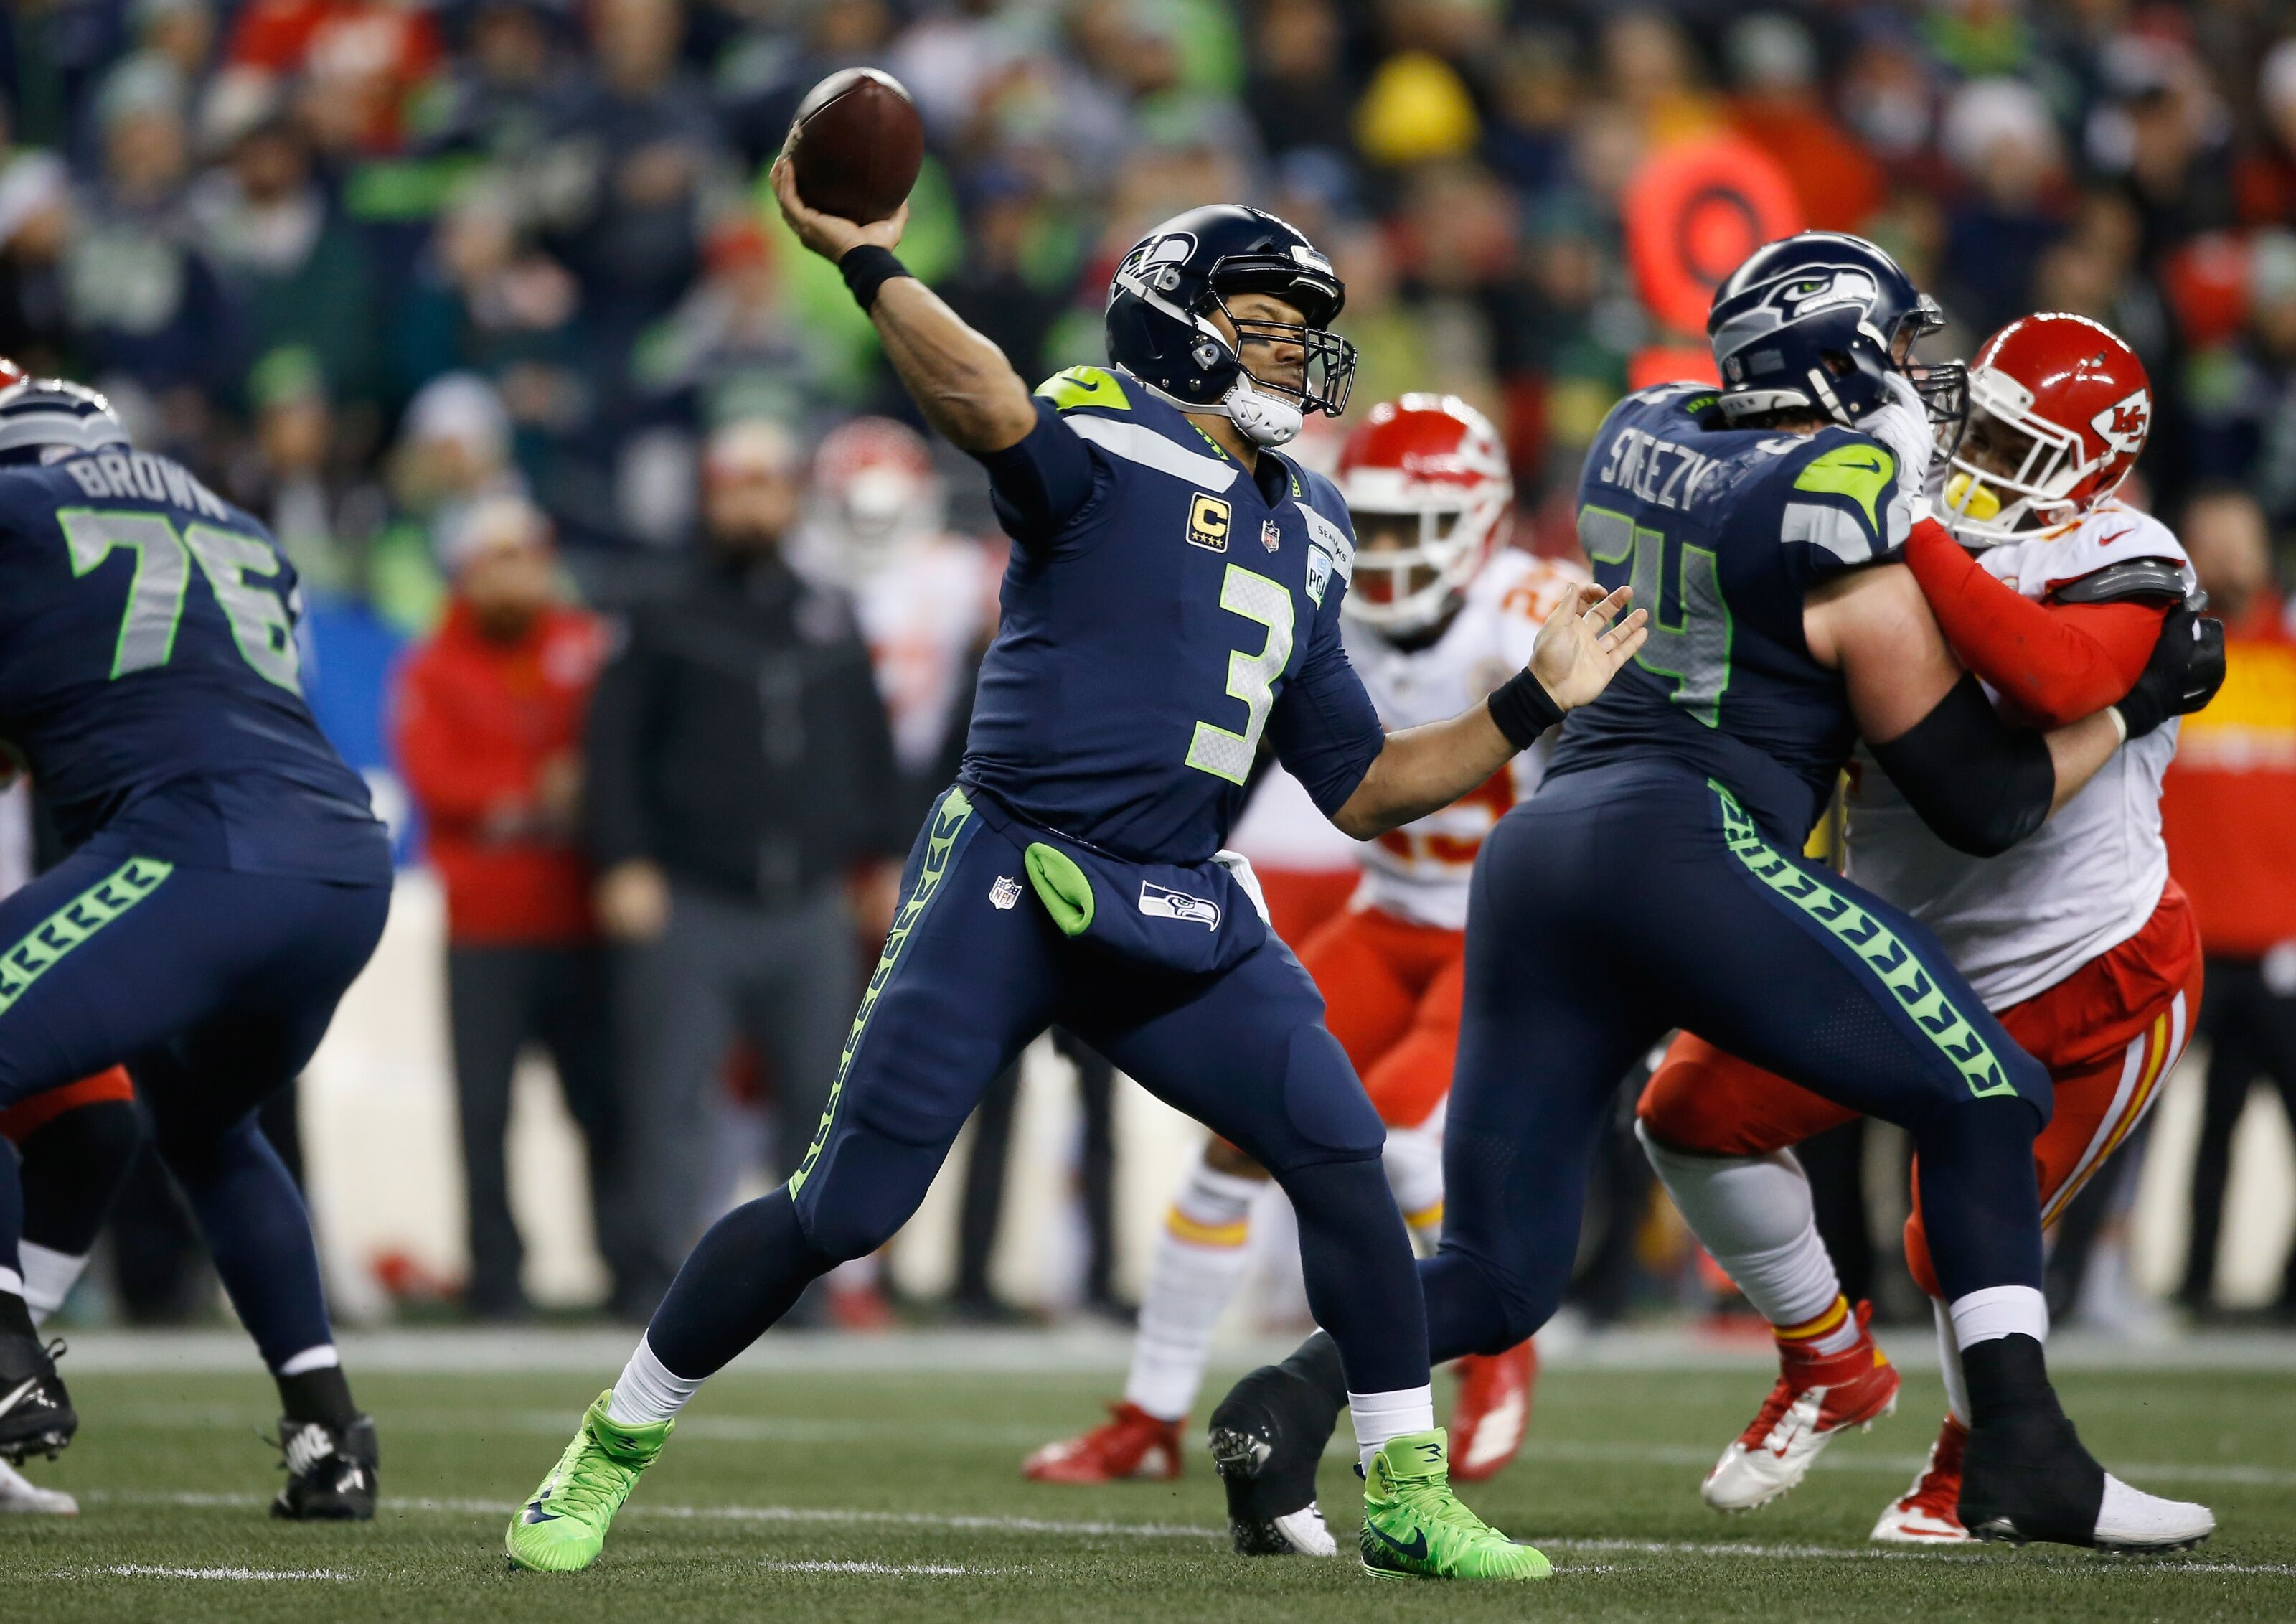 ef588c513 An early look at Seahawks fantasy football relevance